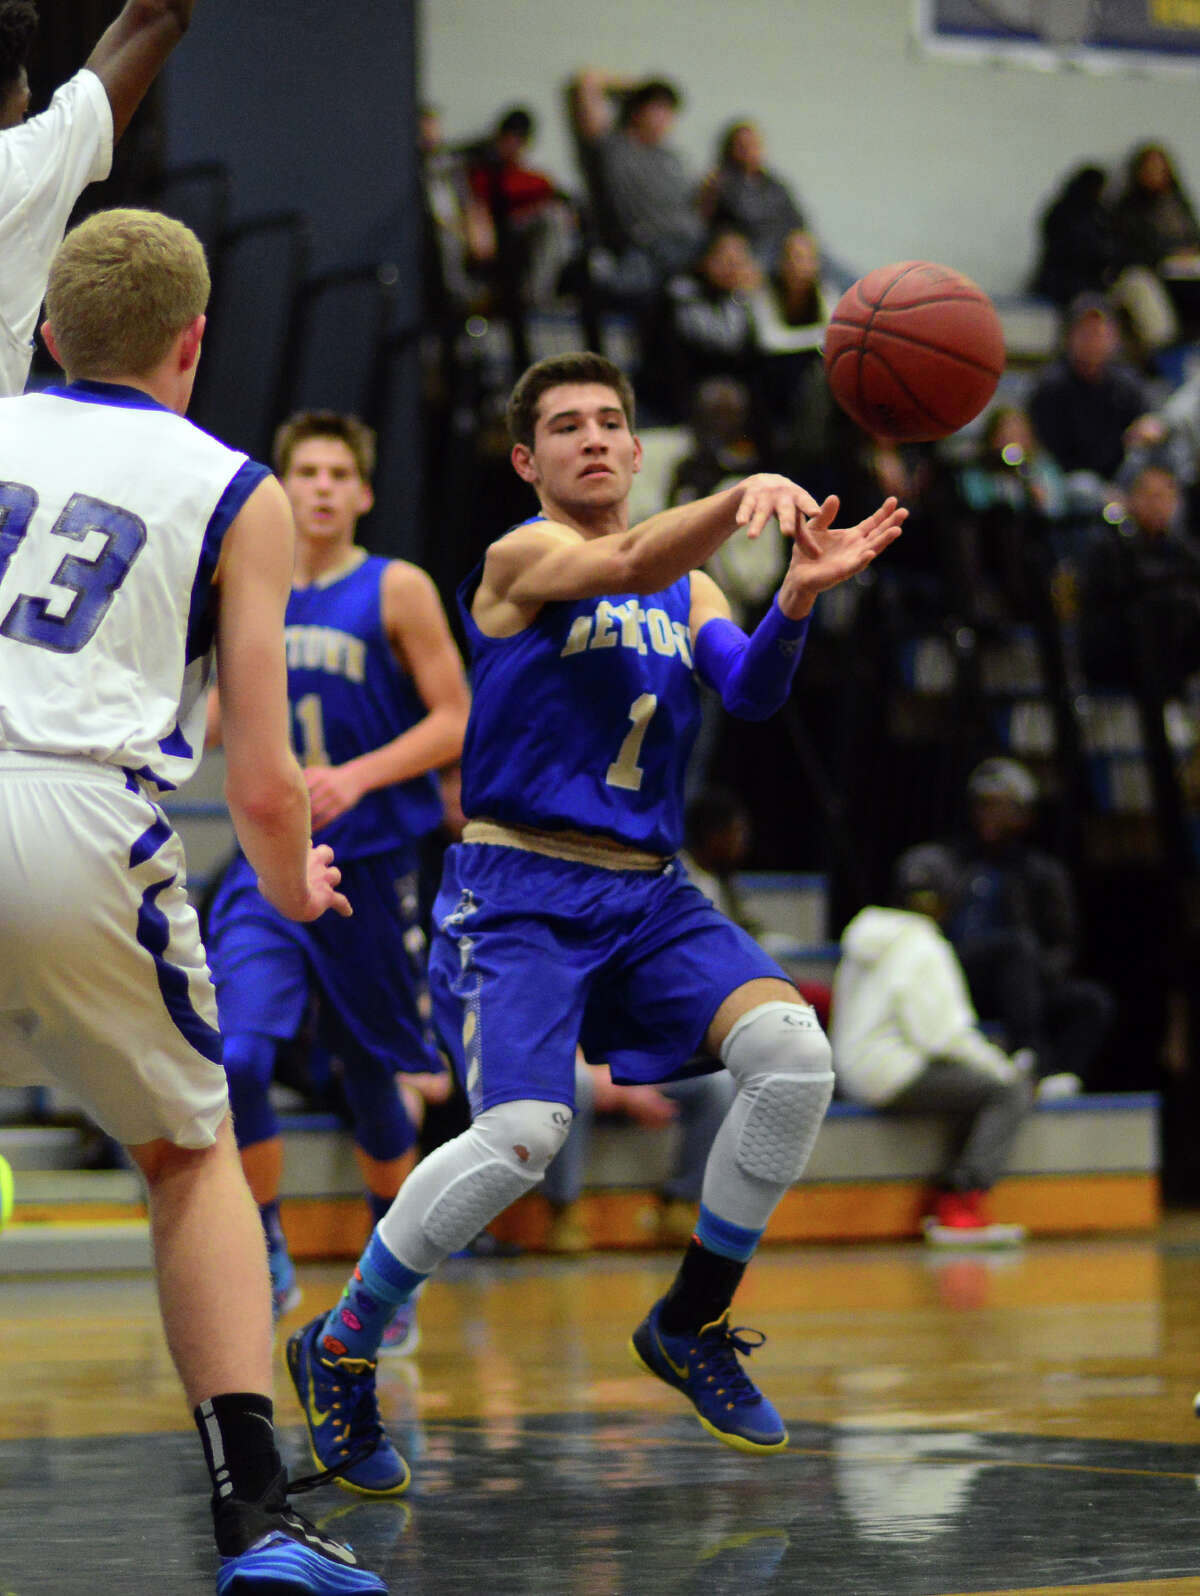 10-3, 16 points Nighthawks averaging 15.7 assists per game, sixth best in the state and tops in the region.